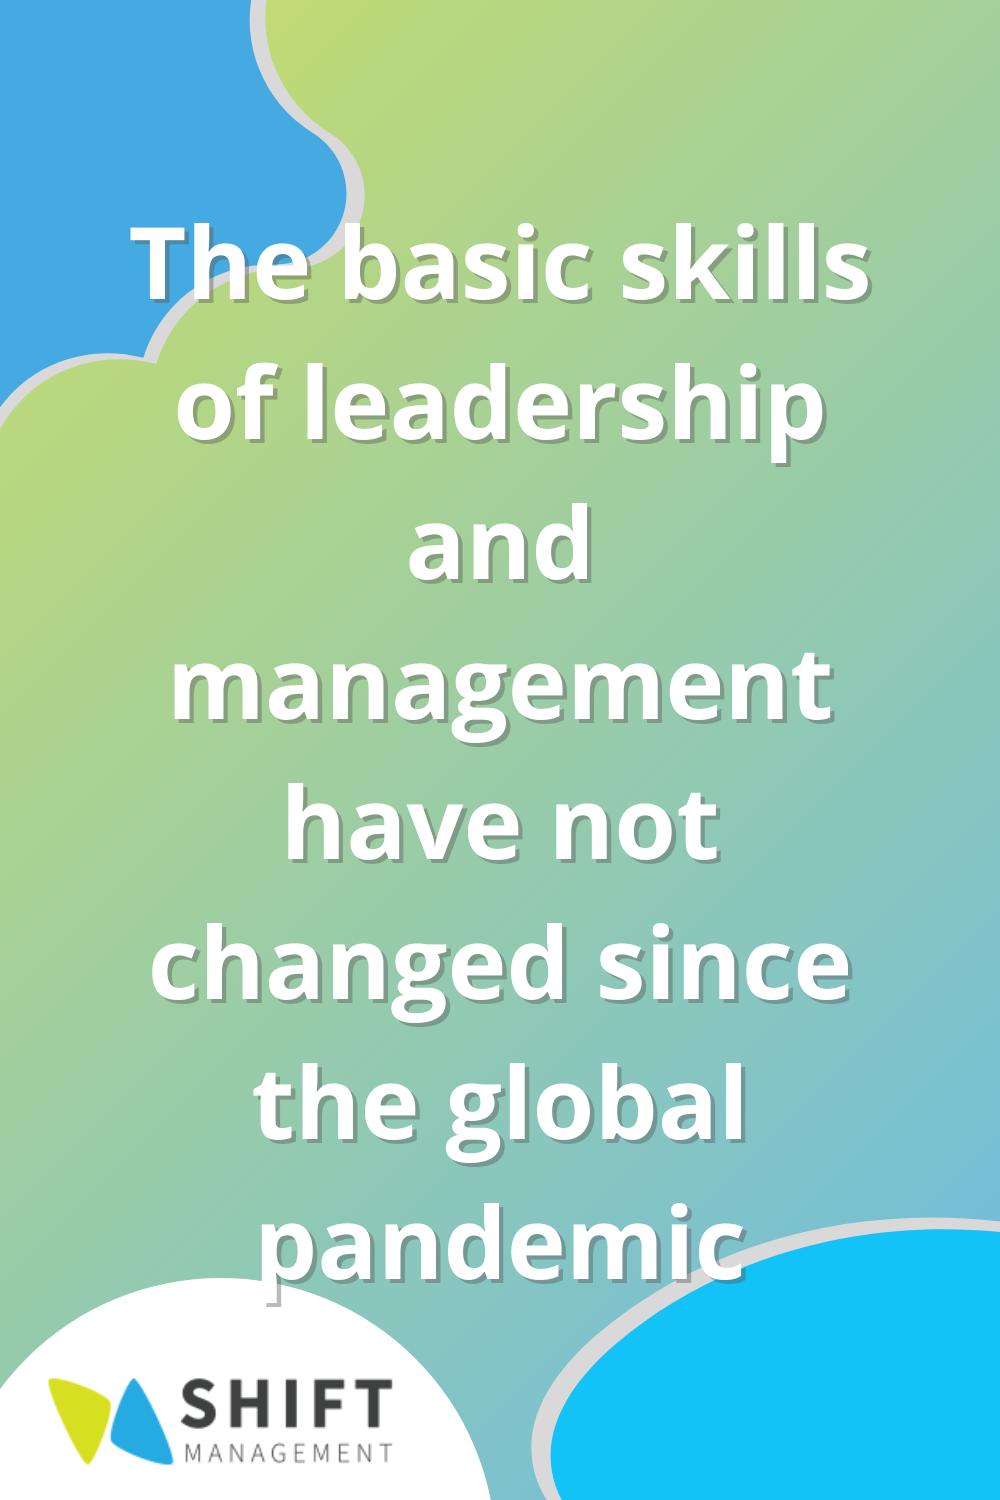 The basic skills of leadership and management have not changed since the global pandemic